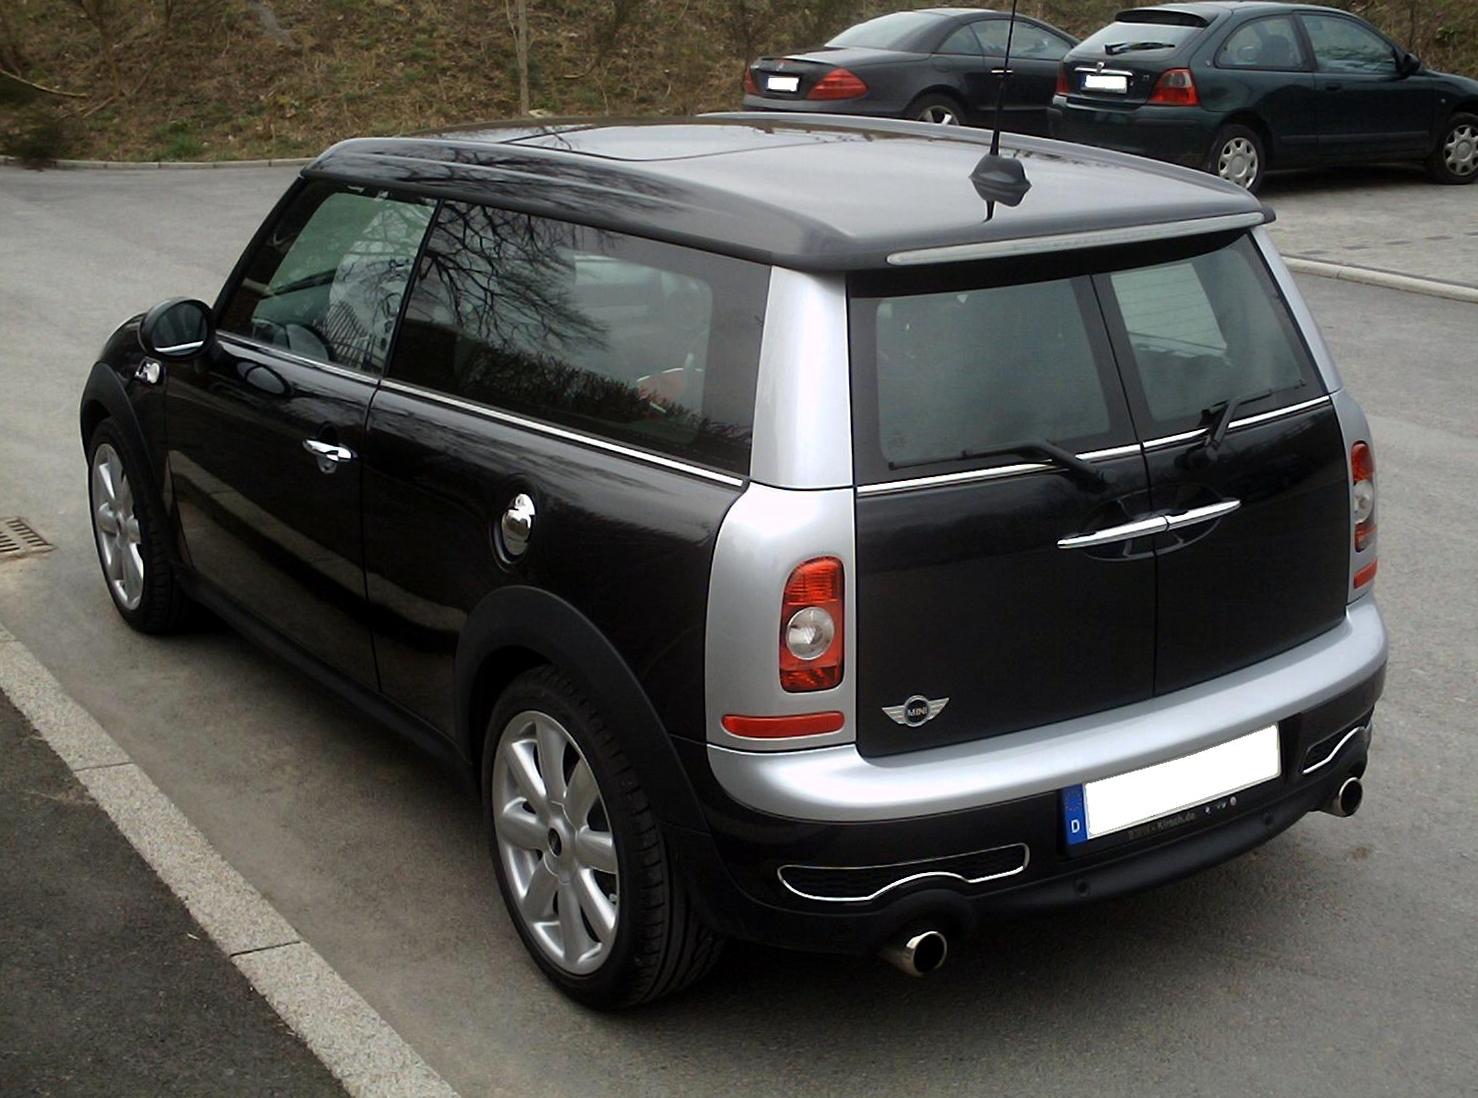 File:Mini Clubman S.jpg - Wikimedia Commons